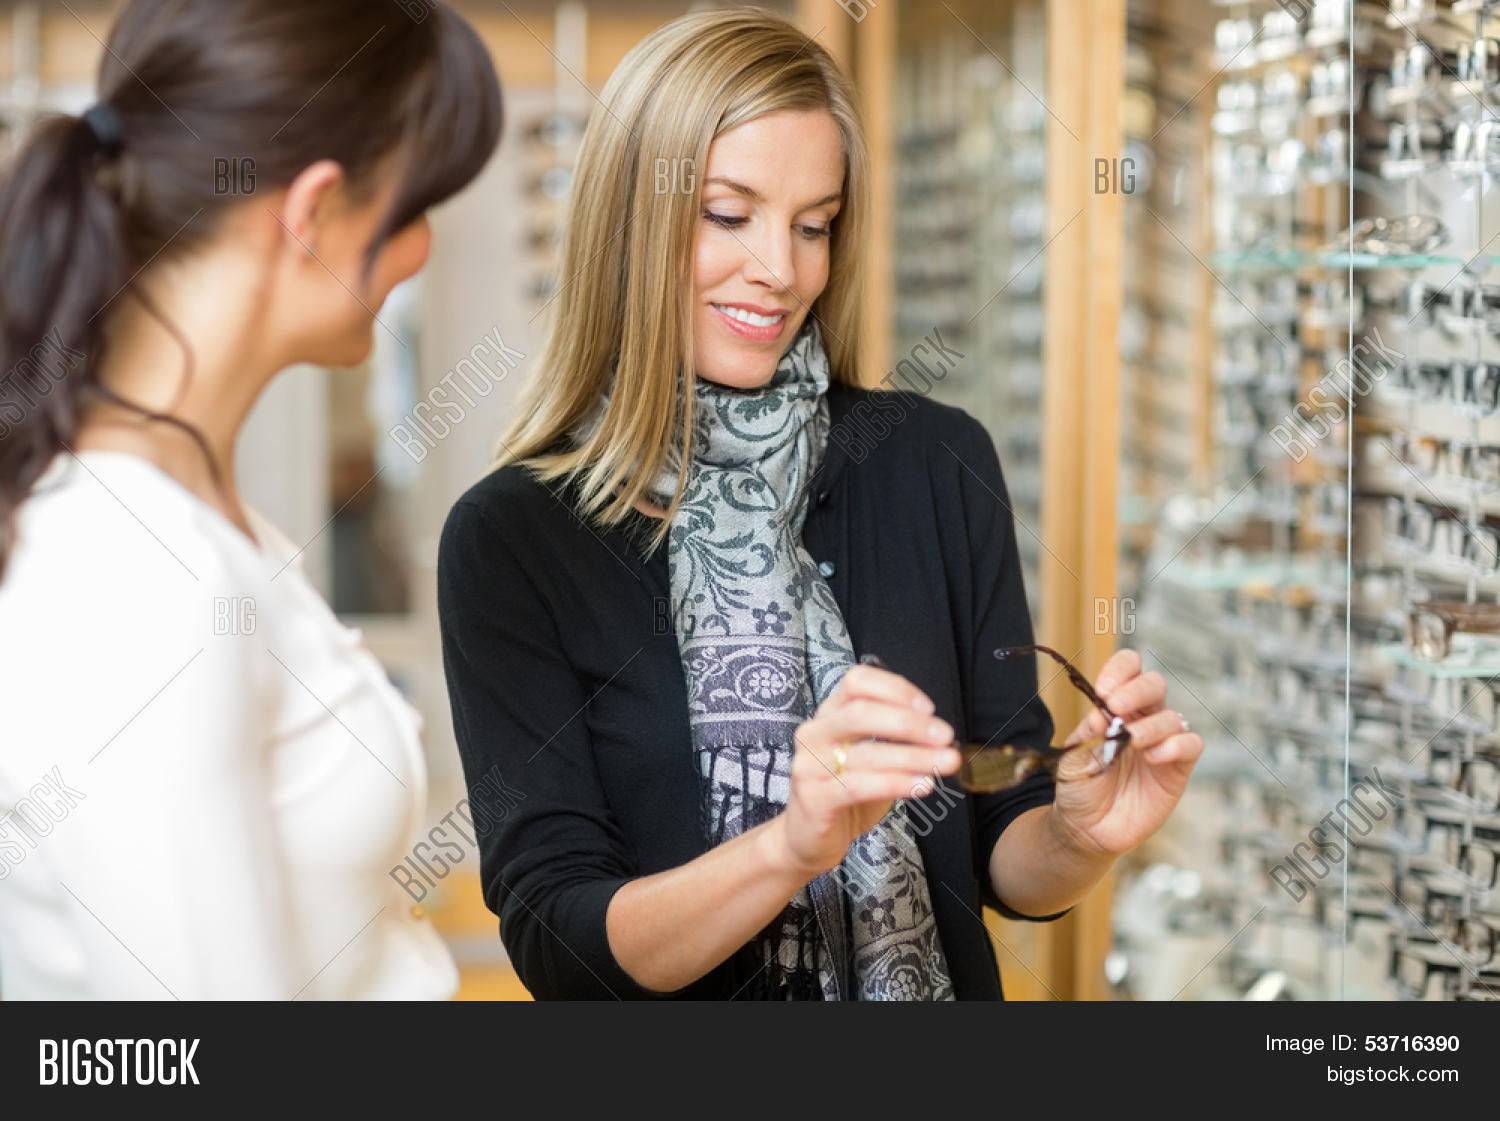 e59244d413 🔥 Young woman examining eyeglasses with salesgirl in optician store